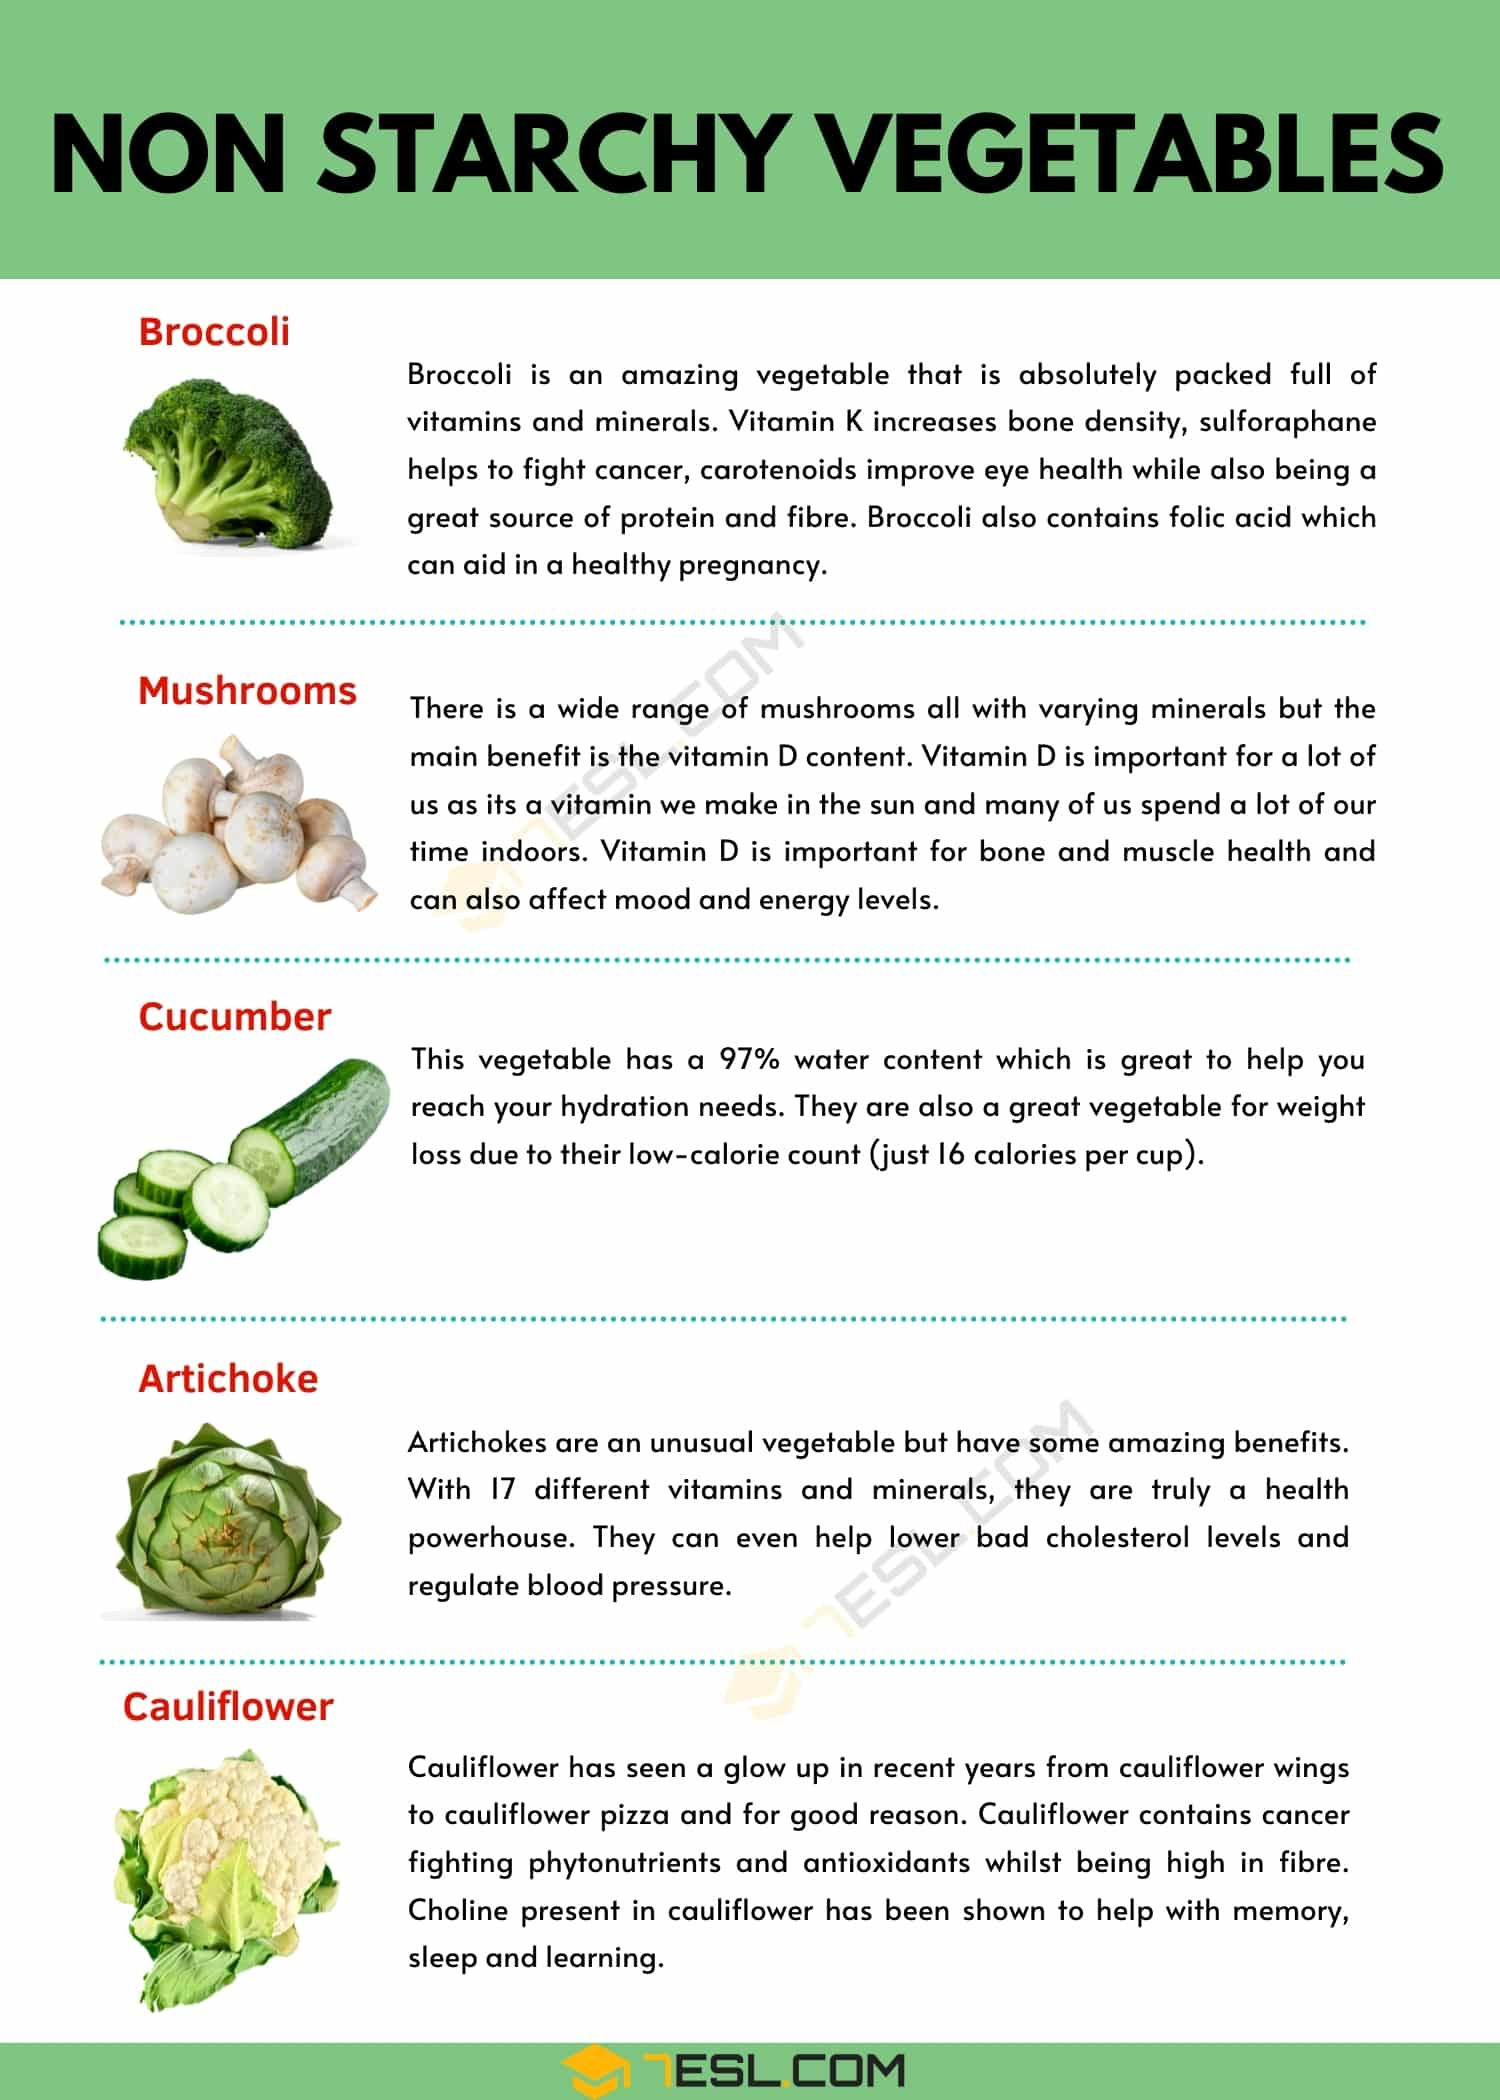 Top 5 Non Starchy Vegetables & Their Amazing Benefits